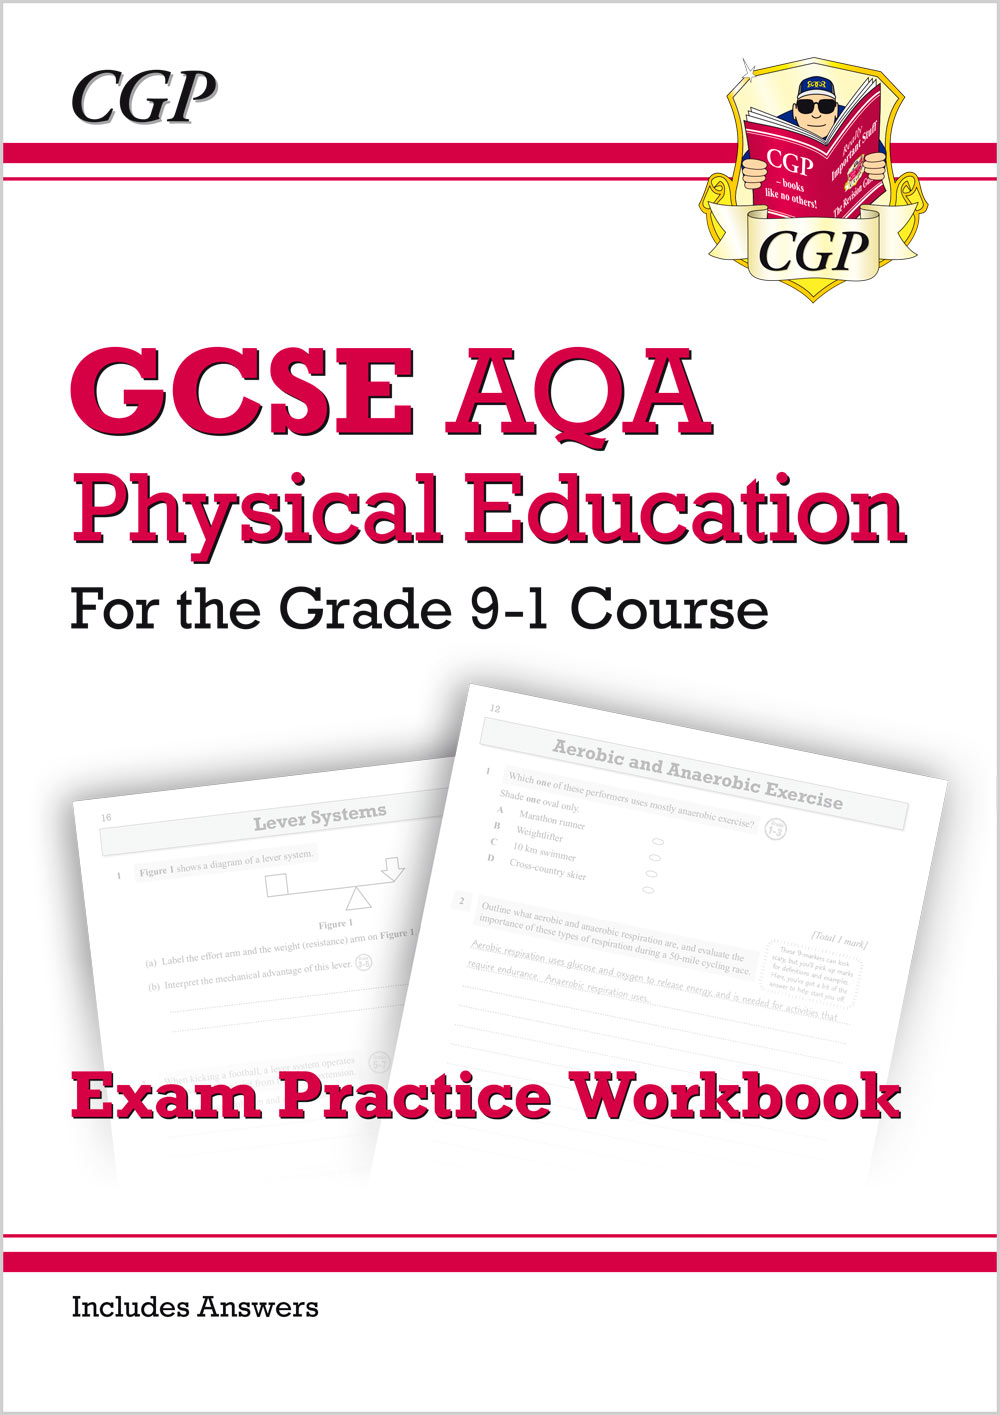 JAQ41 - New GCSE Physical Education AQA Exam Practice Workbook - for the Grade 9-1 Course (incl Answ